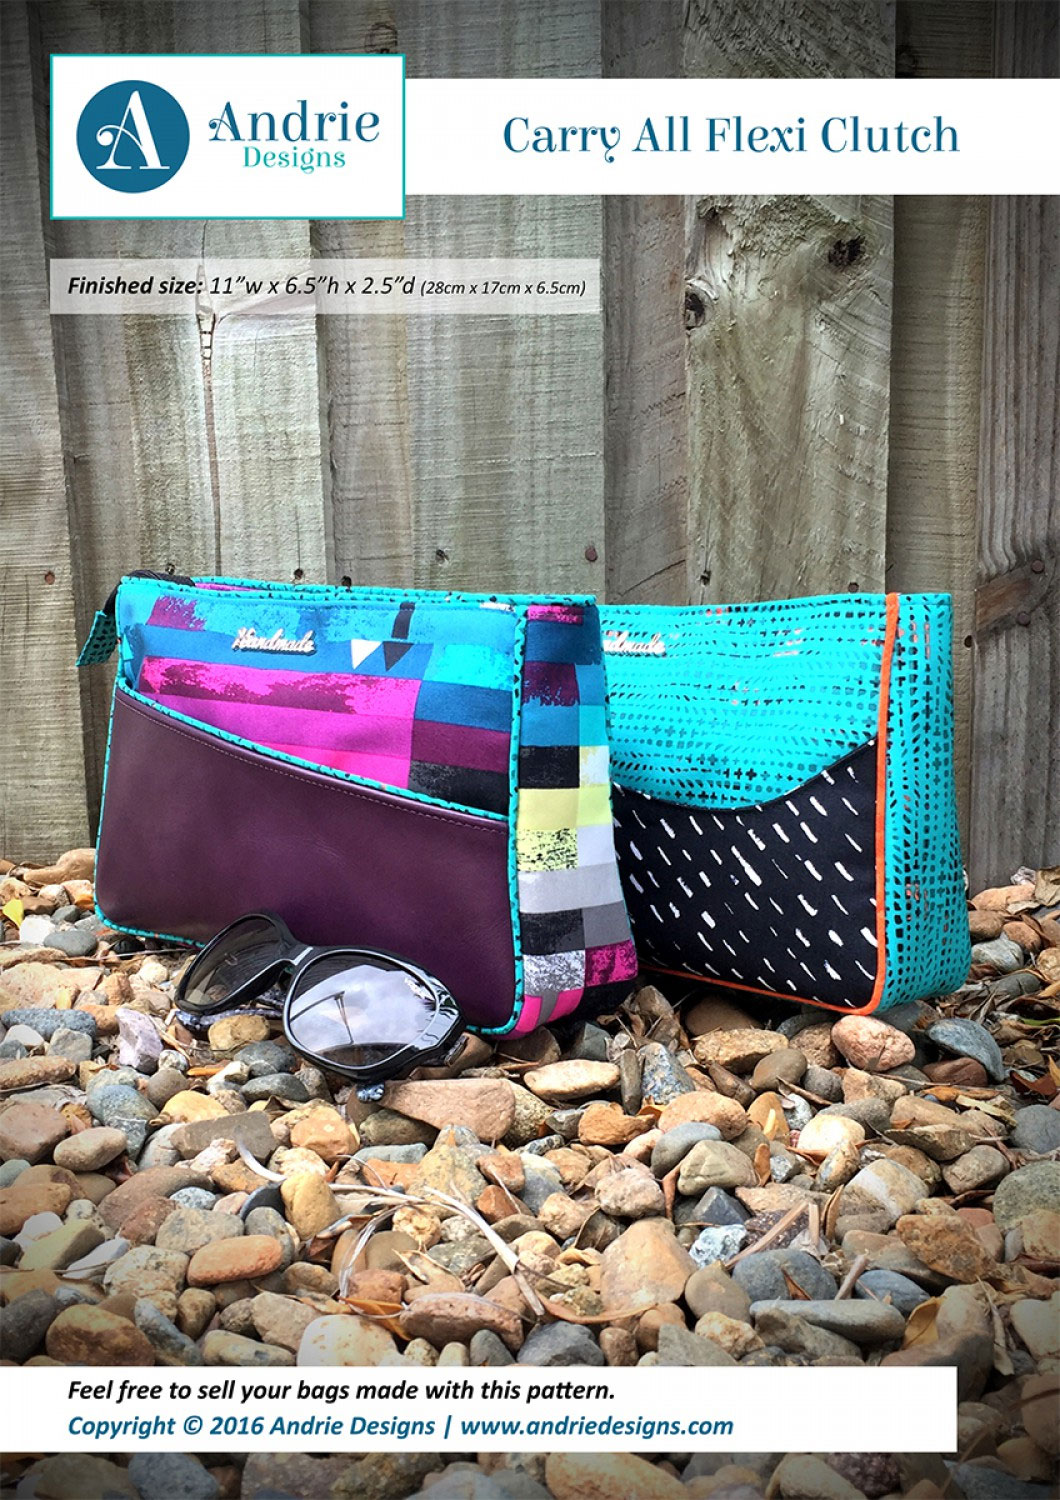 carry-all-flexi-clutch-sewing-pattern-andrie-designs-front